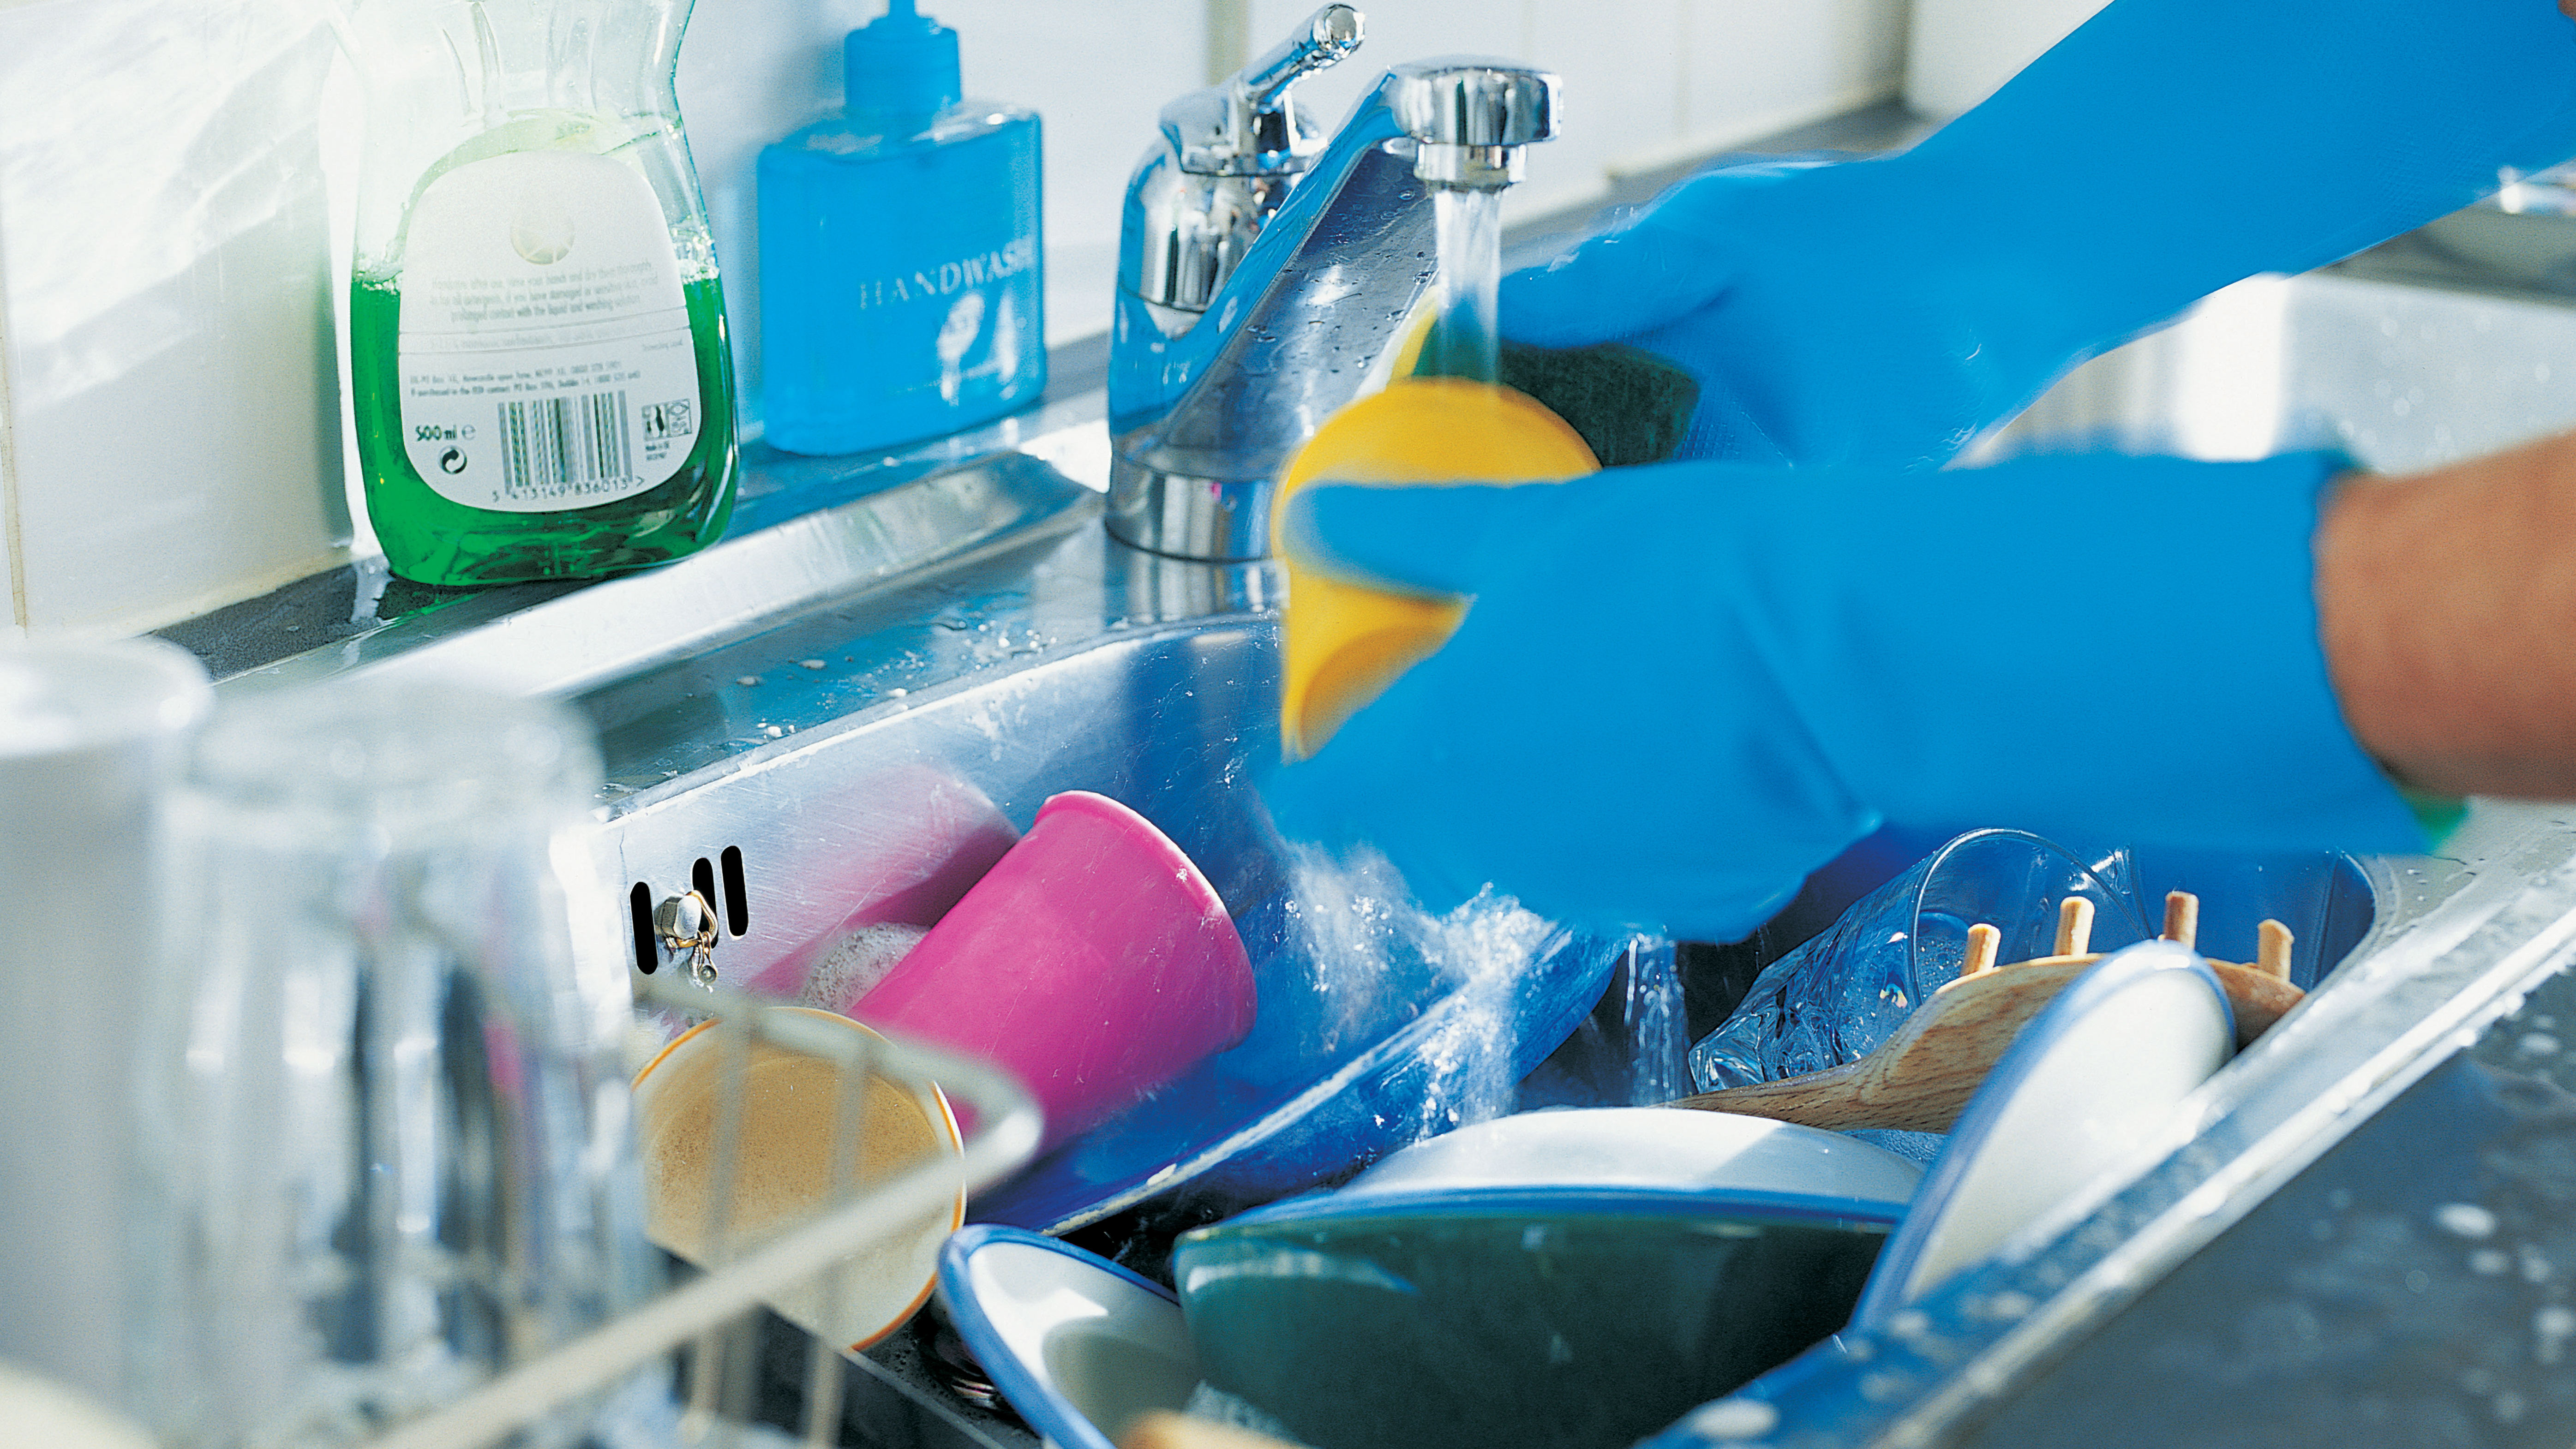 In the division of household tasks, one study shows that washing dishes is the category with the biggest discrepancy between men and women. (Alex Wilson/Getty Images)